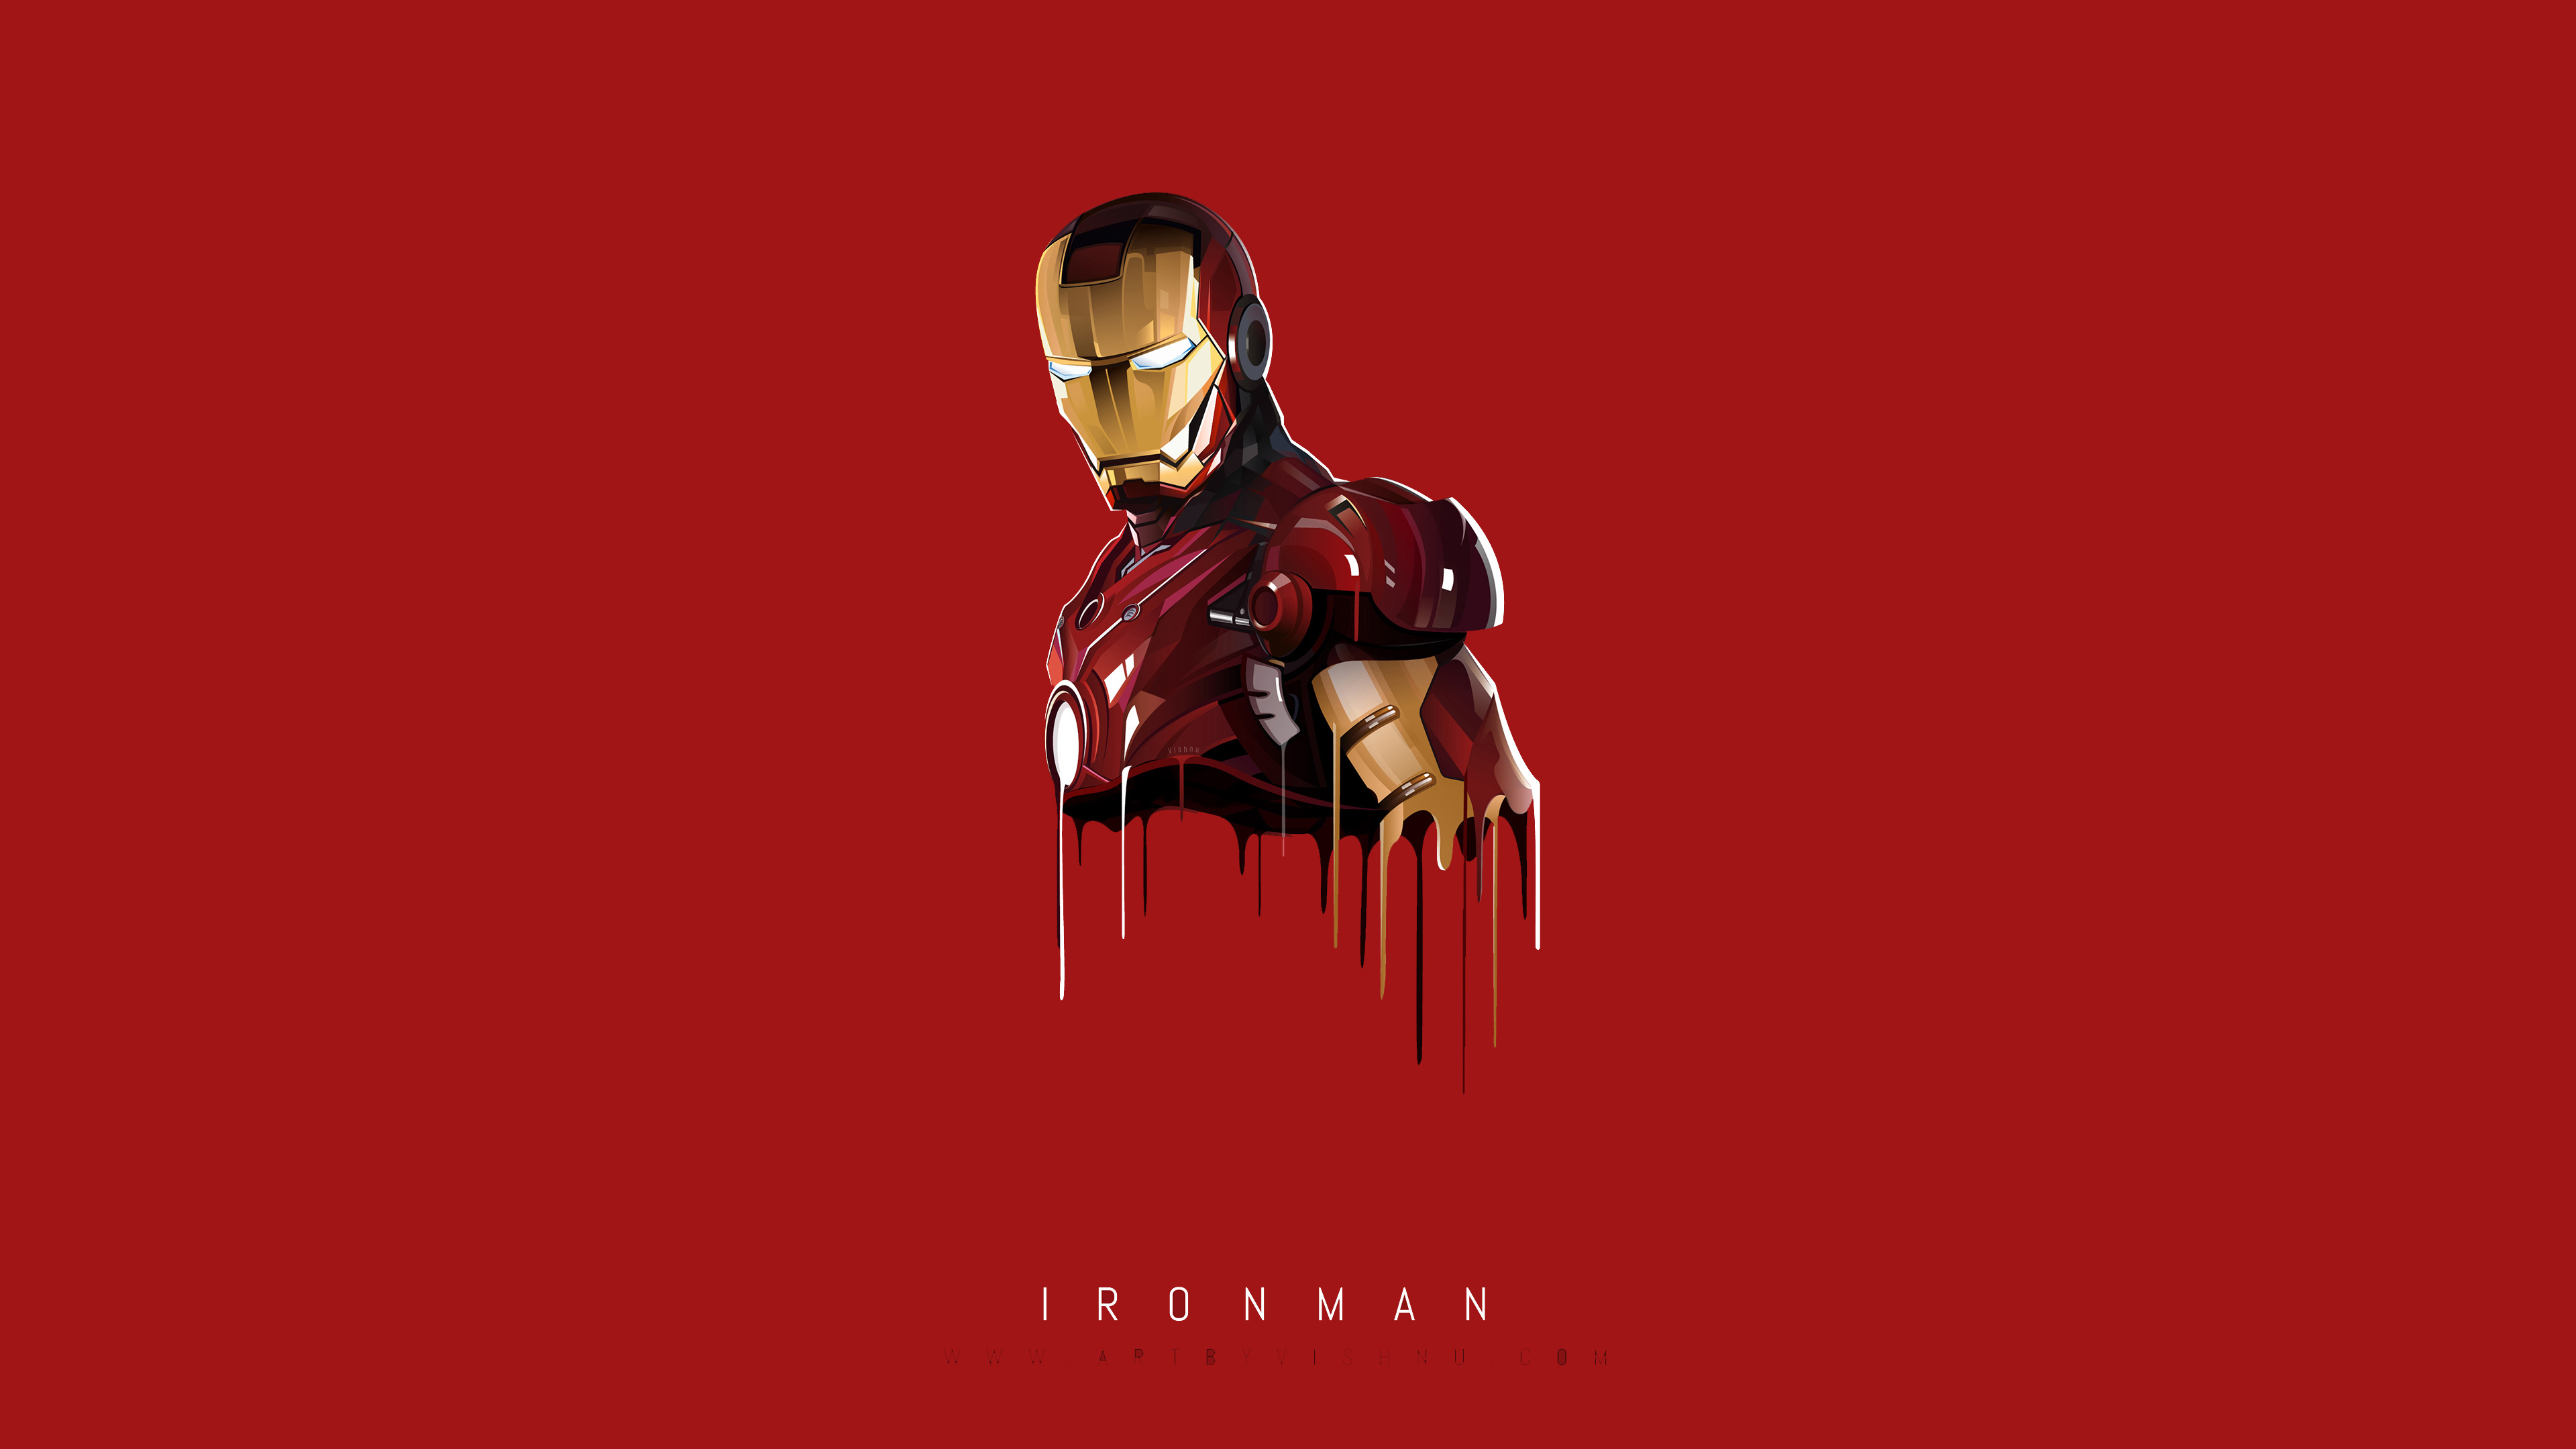 iron man minimal 1536522657 - Iron Man Minimal - superheroes wallpapers, minimalism wallpapers, iron man wallpapers, hd-wallpapers, digital art wallpapers, behance wallpapers, artwork wallpapers, artist wallpapers, 4k-wallpapers